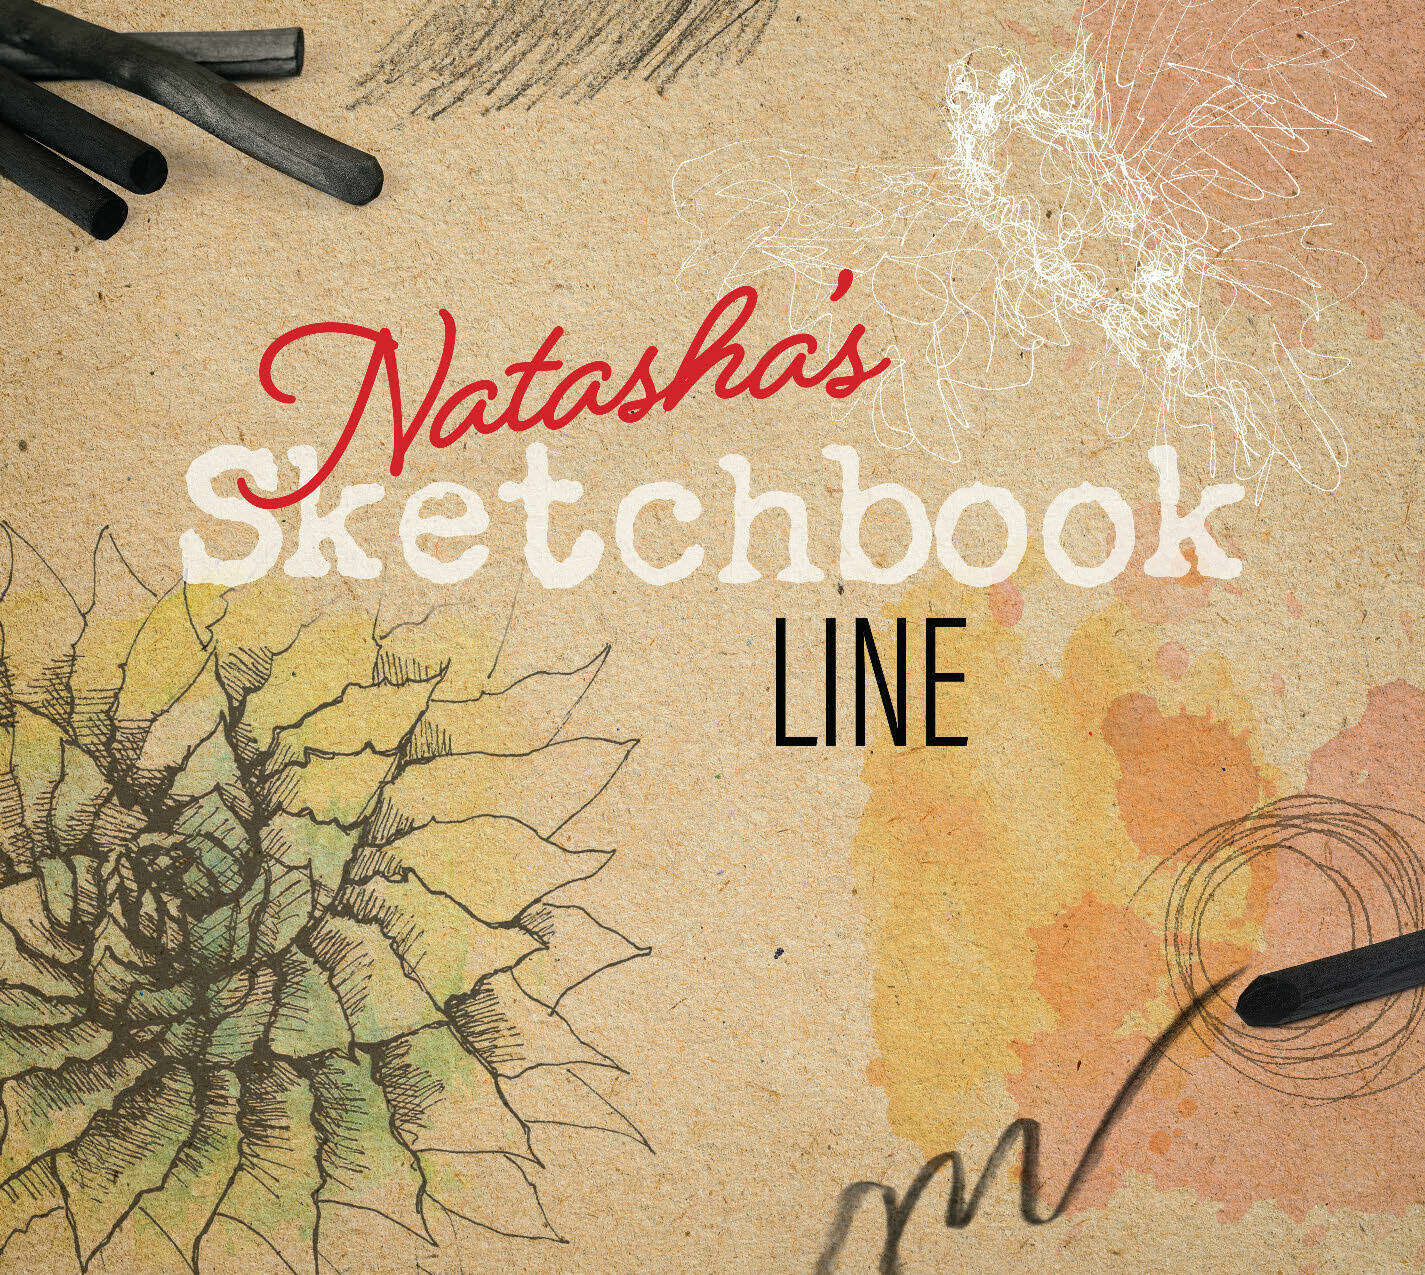 Natasha's Sketchbook - Line